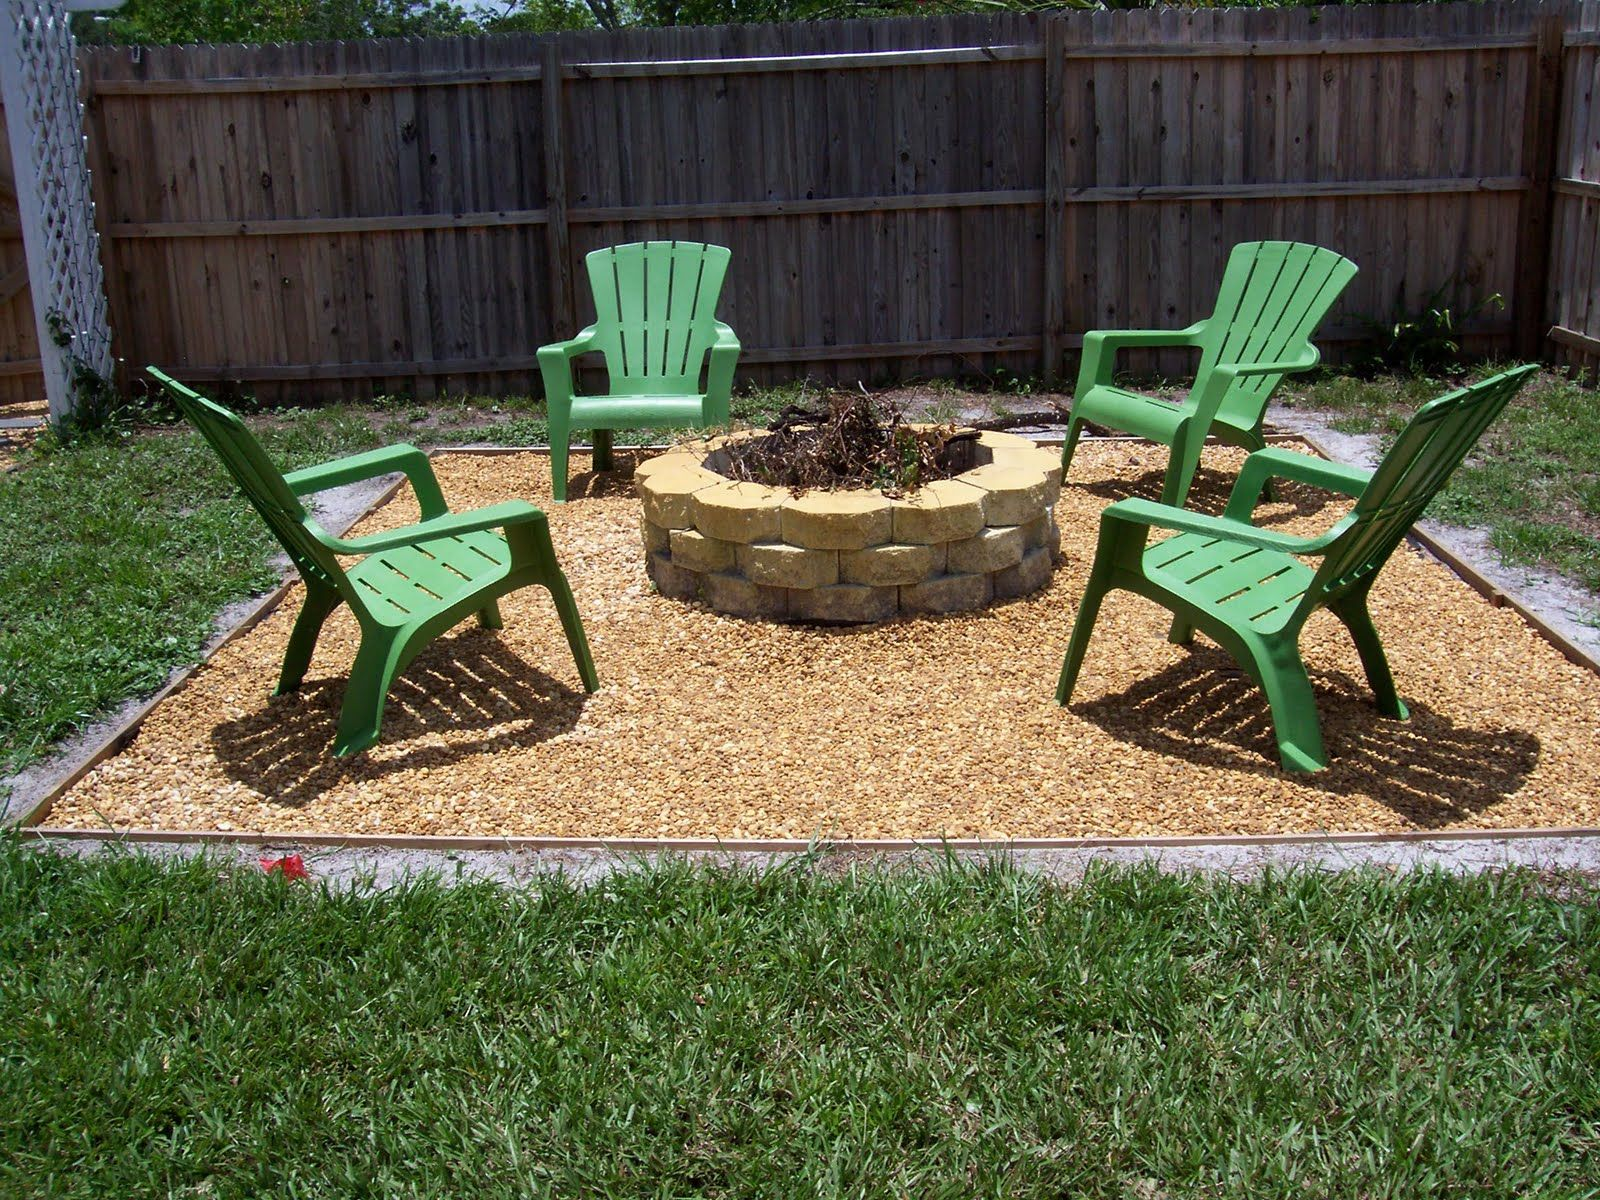 Backyard Landscaping Ideas With Fire Pit 57 inspiring diy fire pit plans ideas to make smores with your family this fall Best 25 Cheap Fire Pit Ideas On Pinterest Cinder Block Bench Cheap Garden Benches And Easy Fire Pit